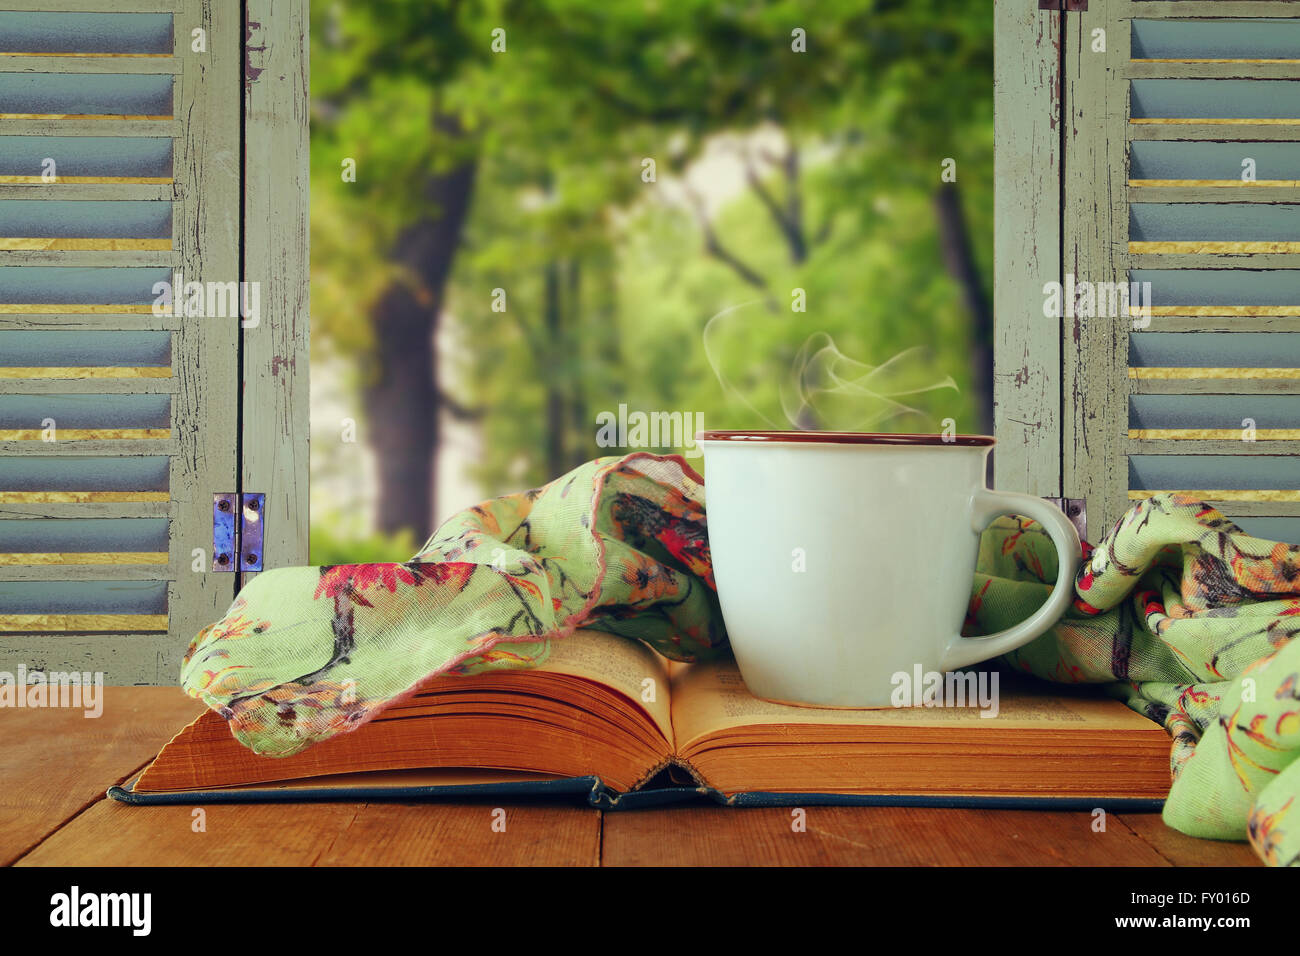 romantic scene of cup of coffee next to old book in front of countryside view outside of the old rustic window. Stock Photo